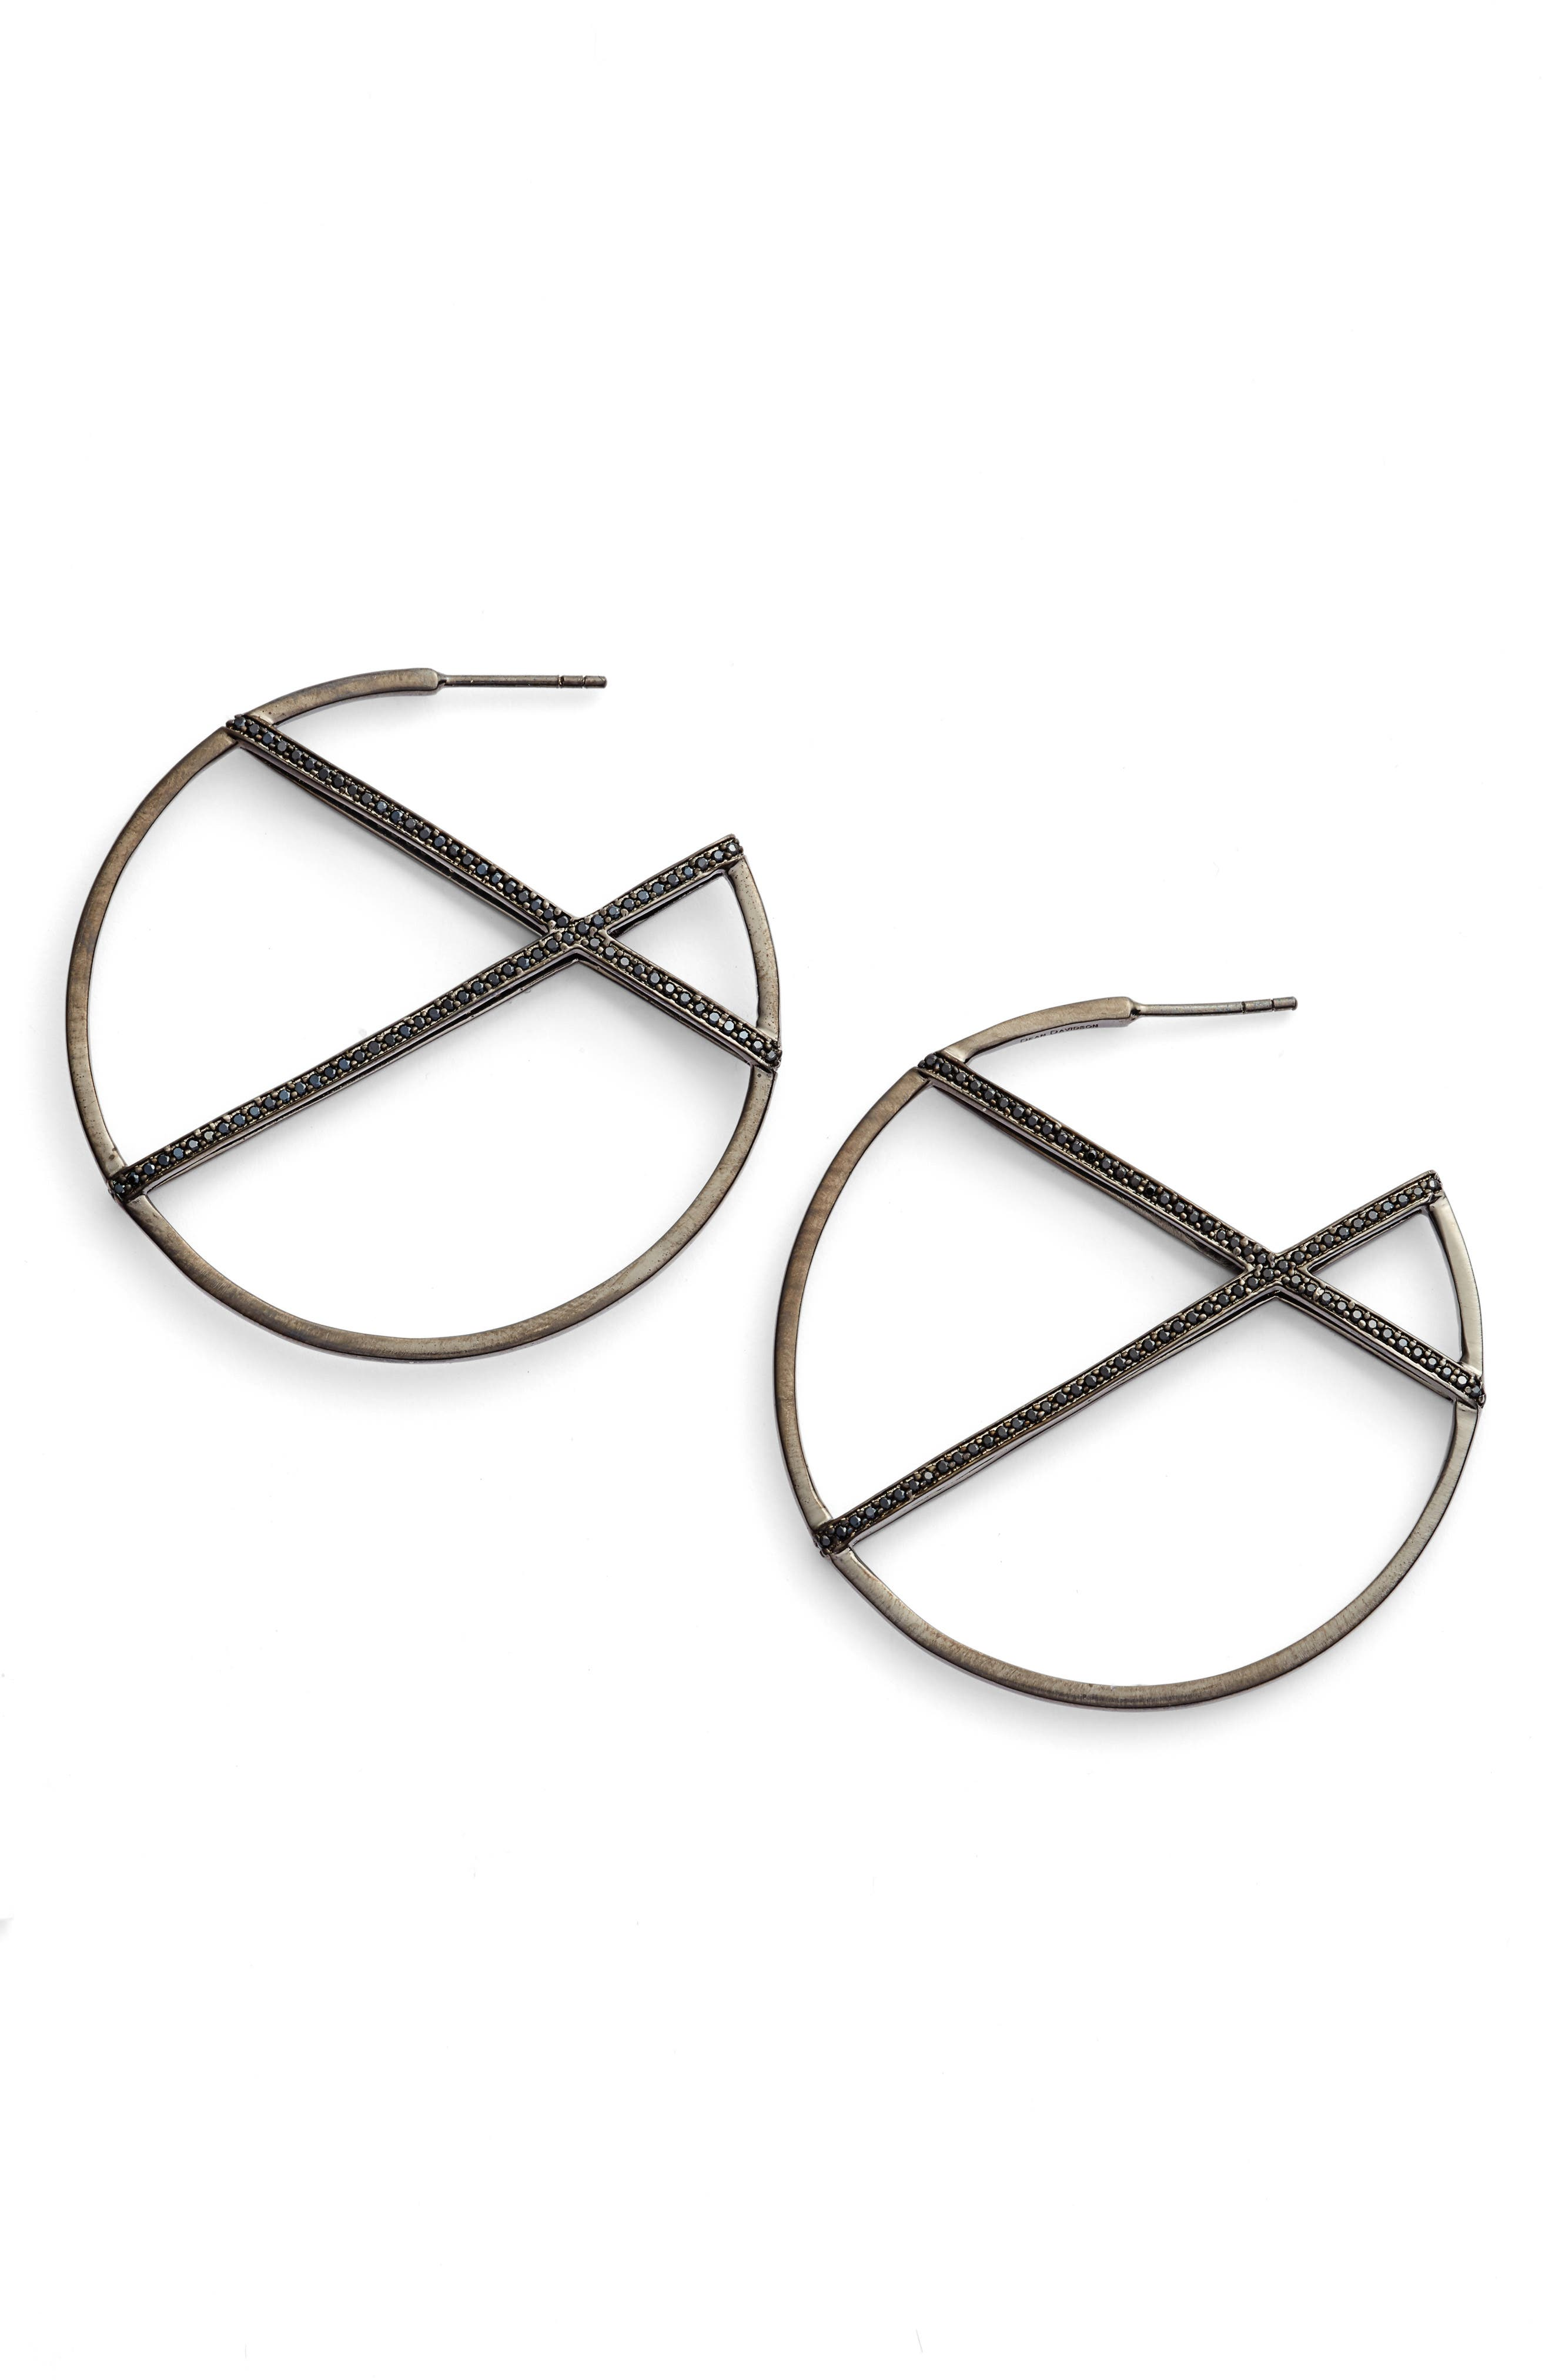 Continuous Hoop Earrings,                         Main,                         color, 001